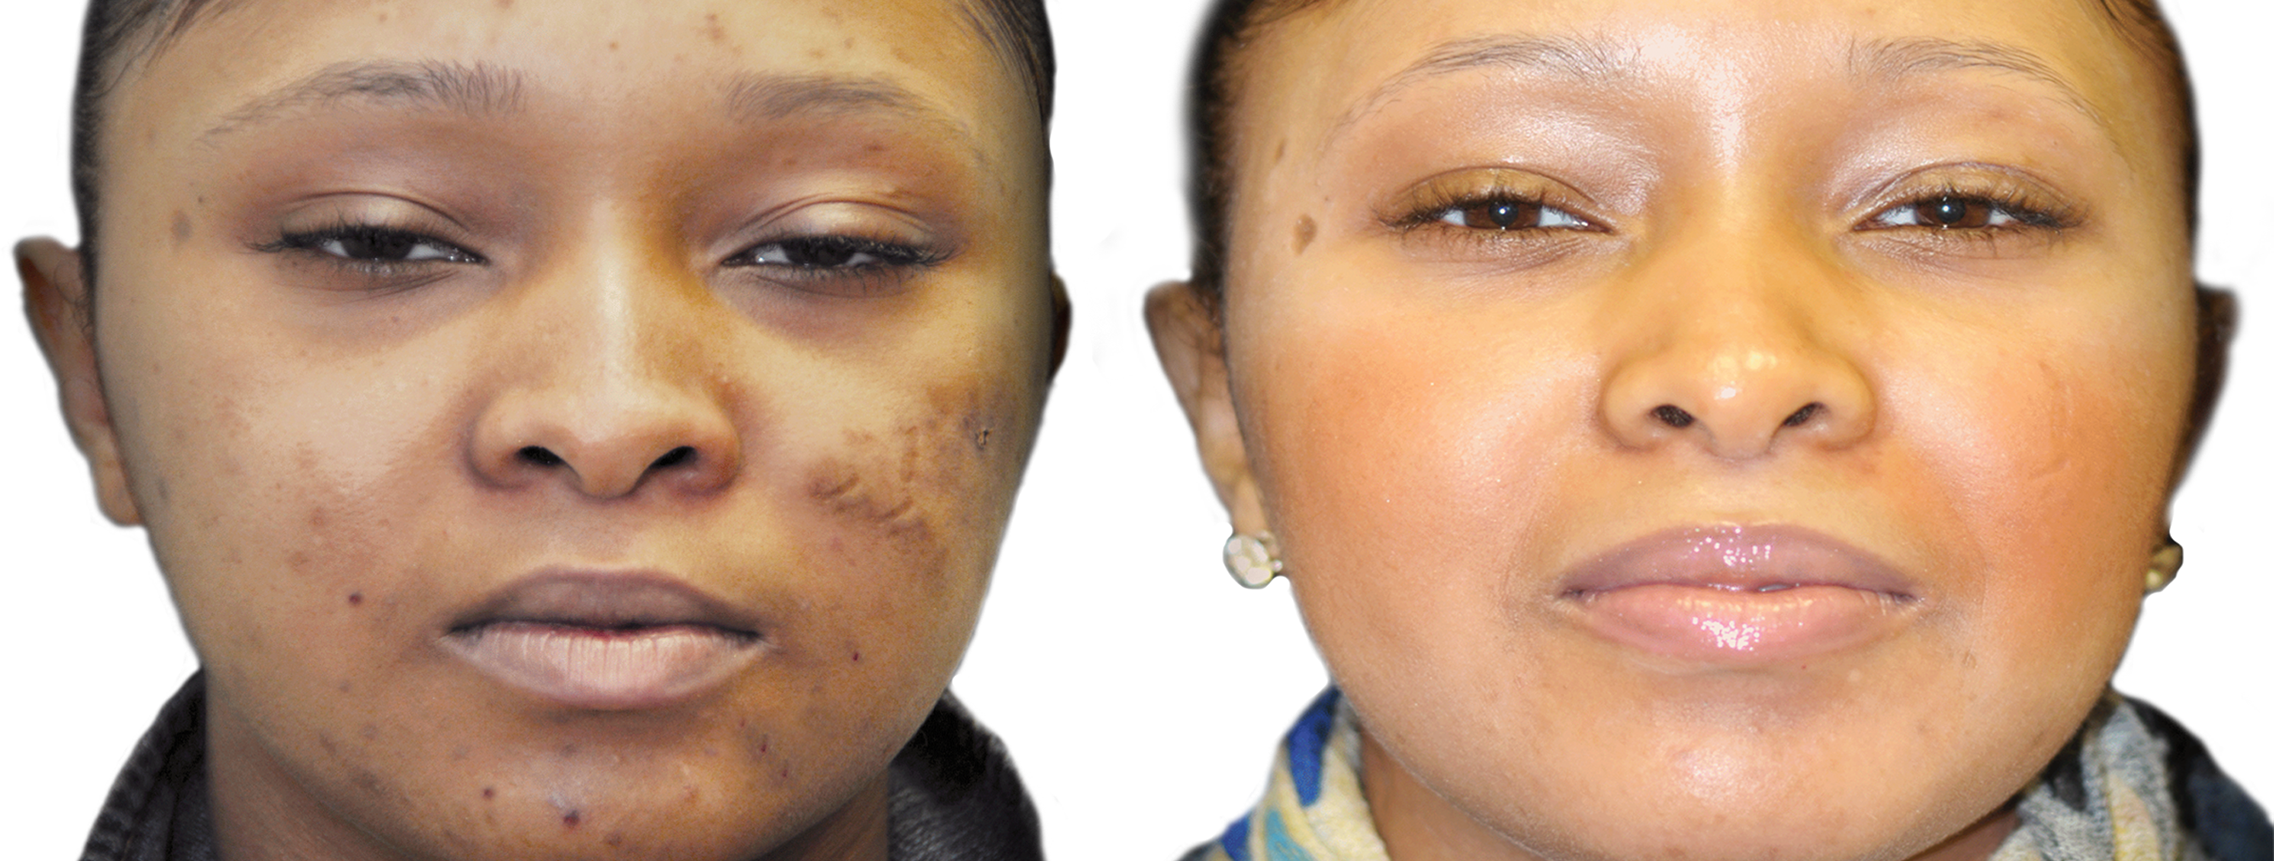 Long Island acne removal before and after